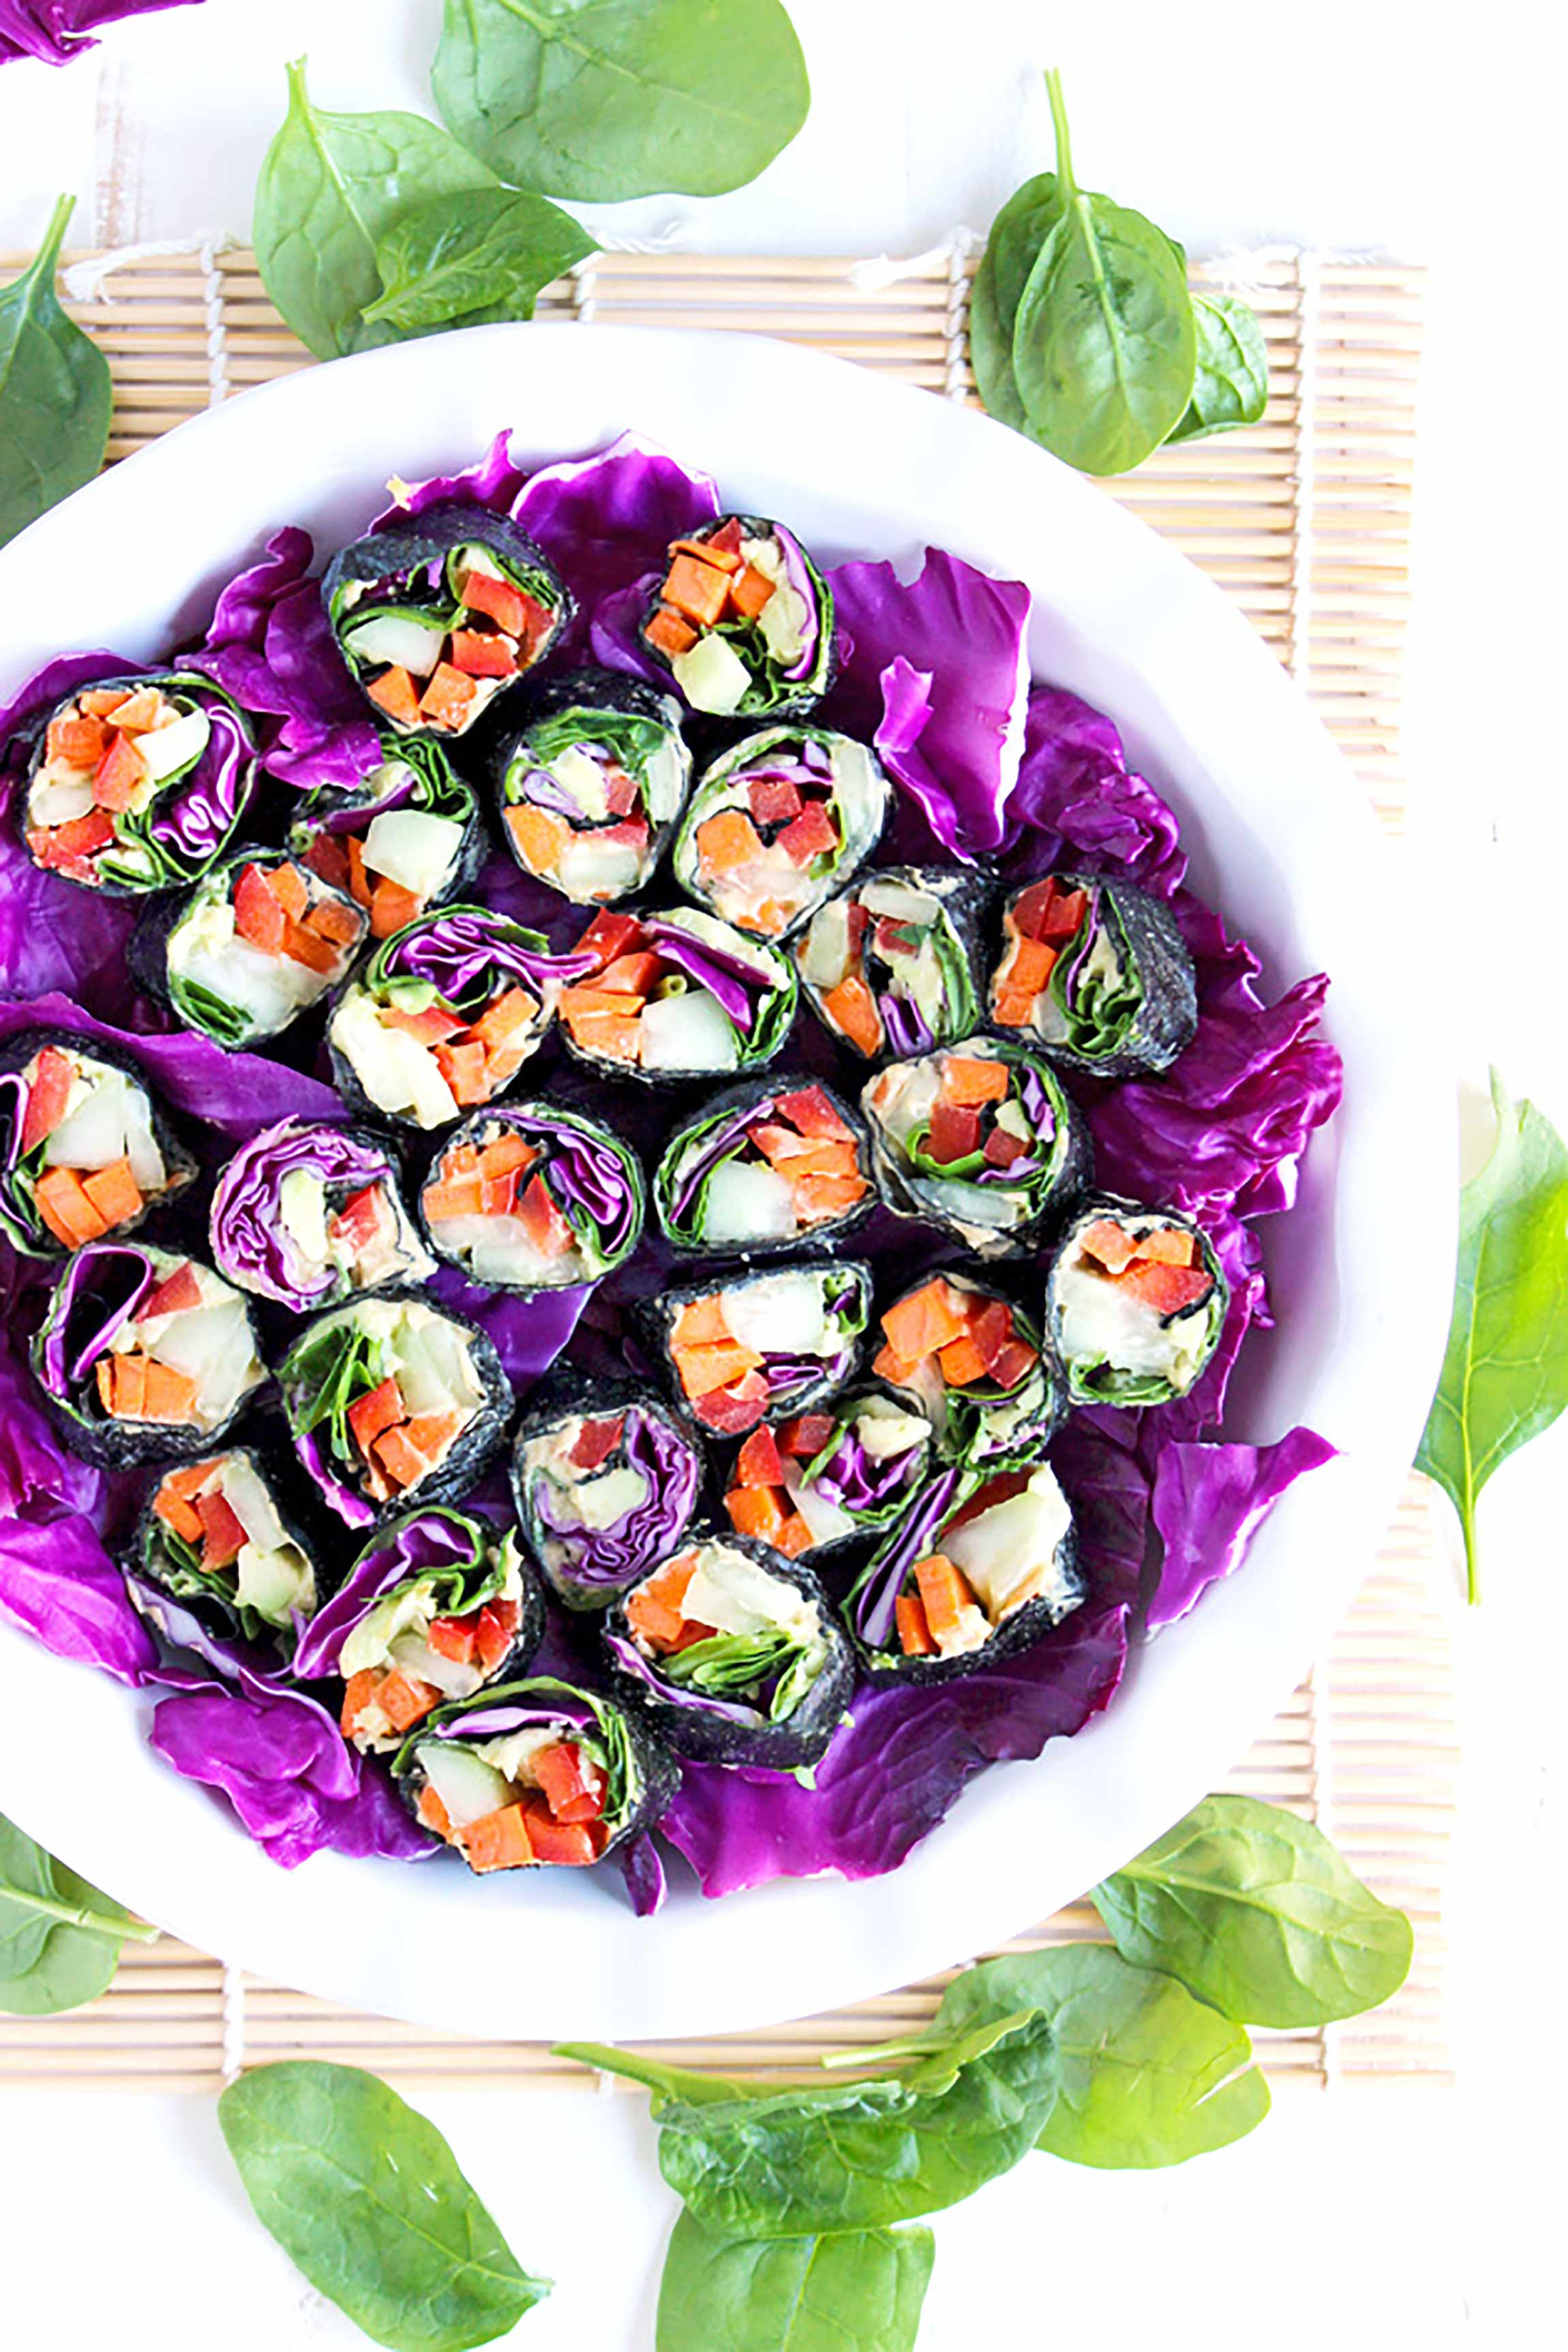 healthy school lunch ideas: veggie nori rolls